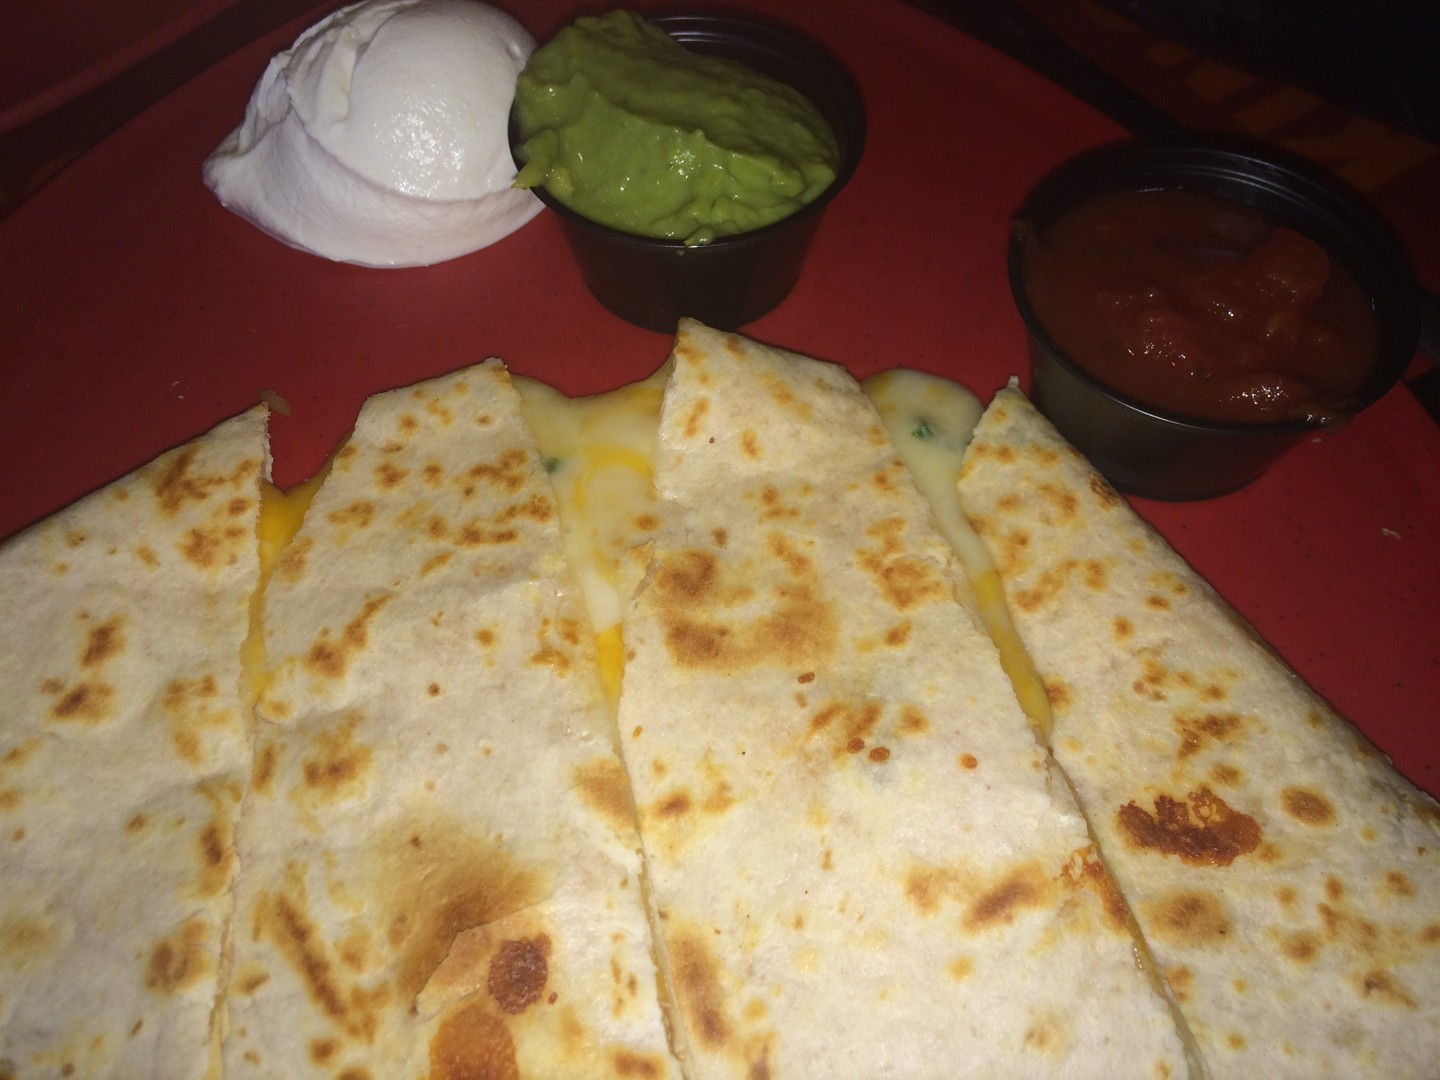 The cheese quesadilla with salsa, sour cream, and guacamole